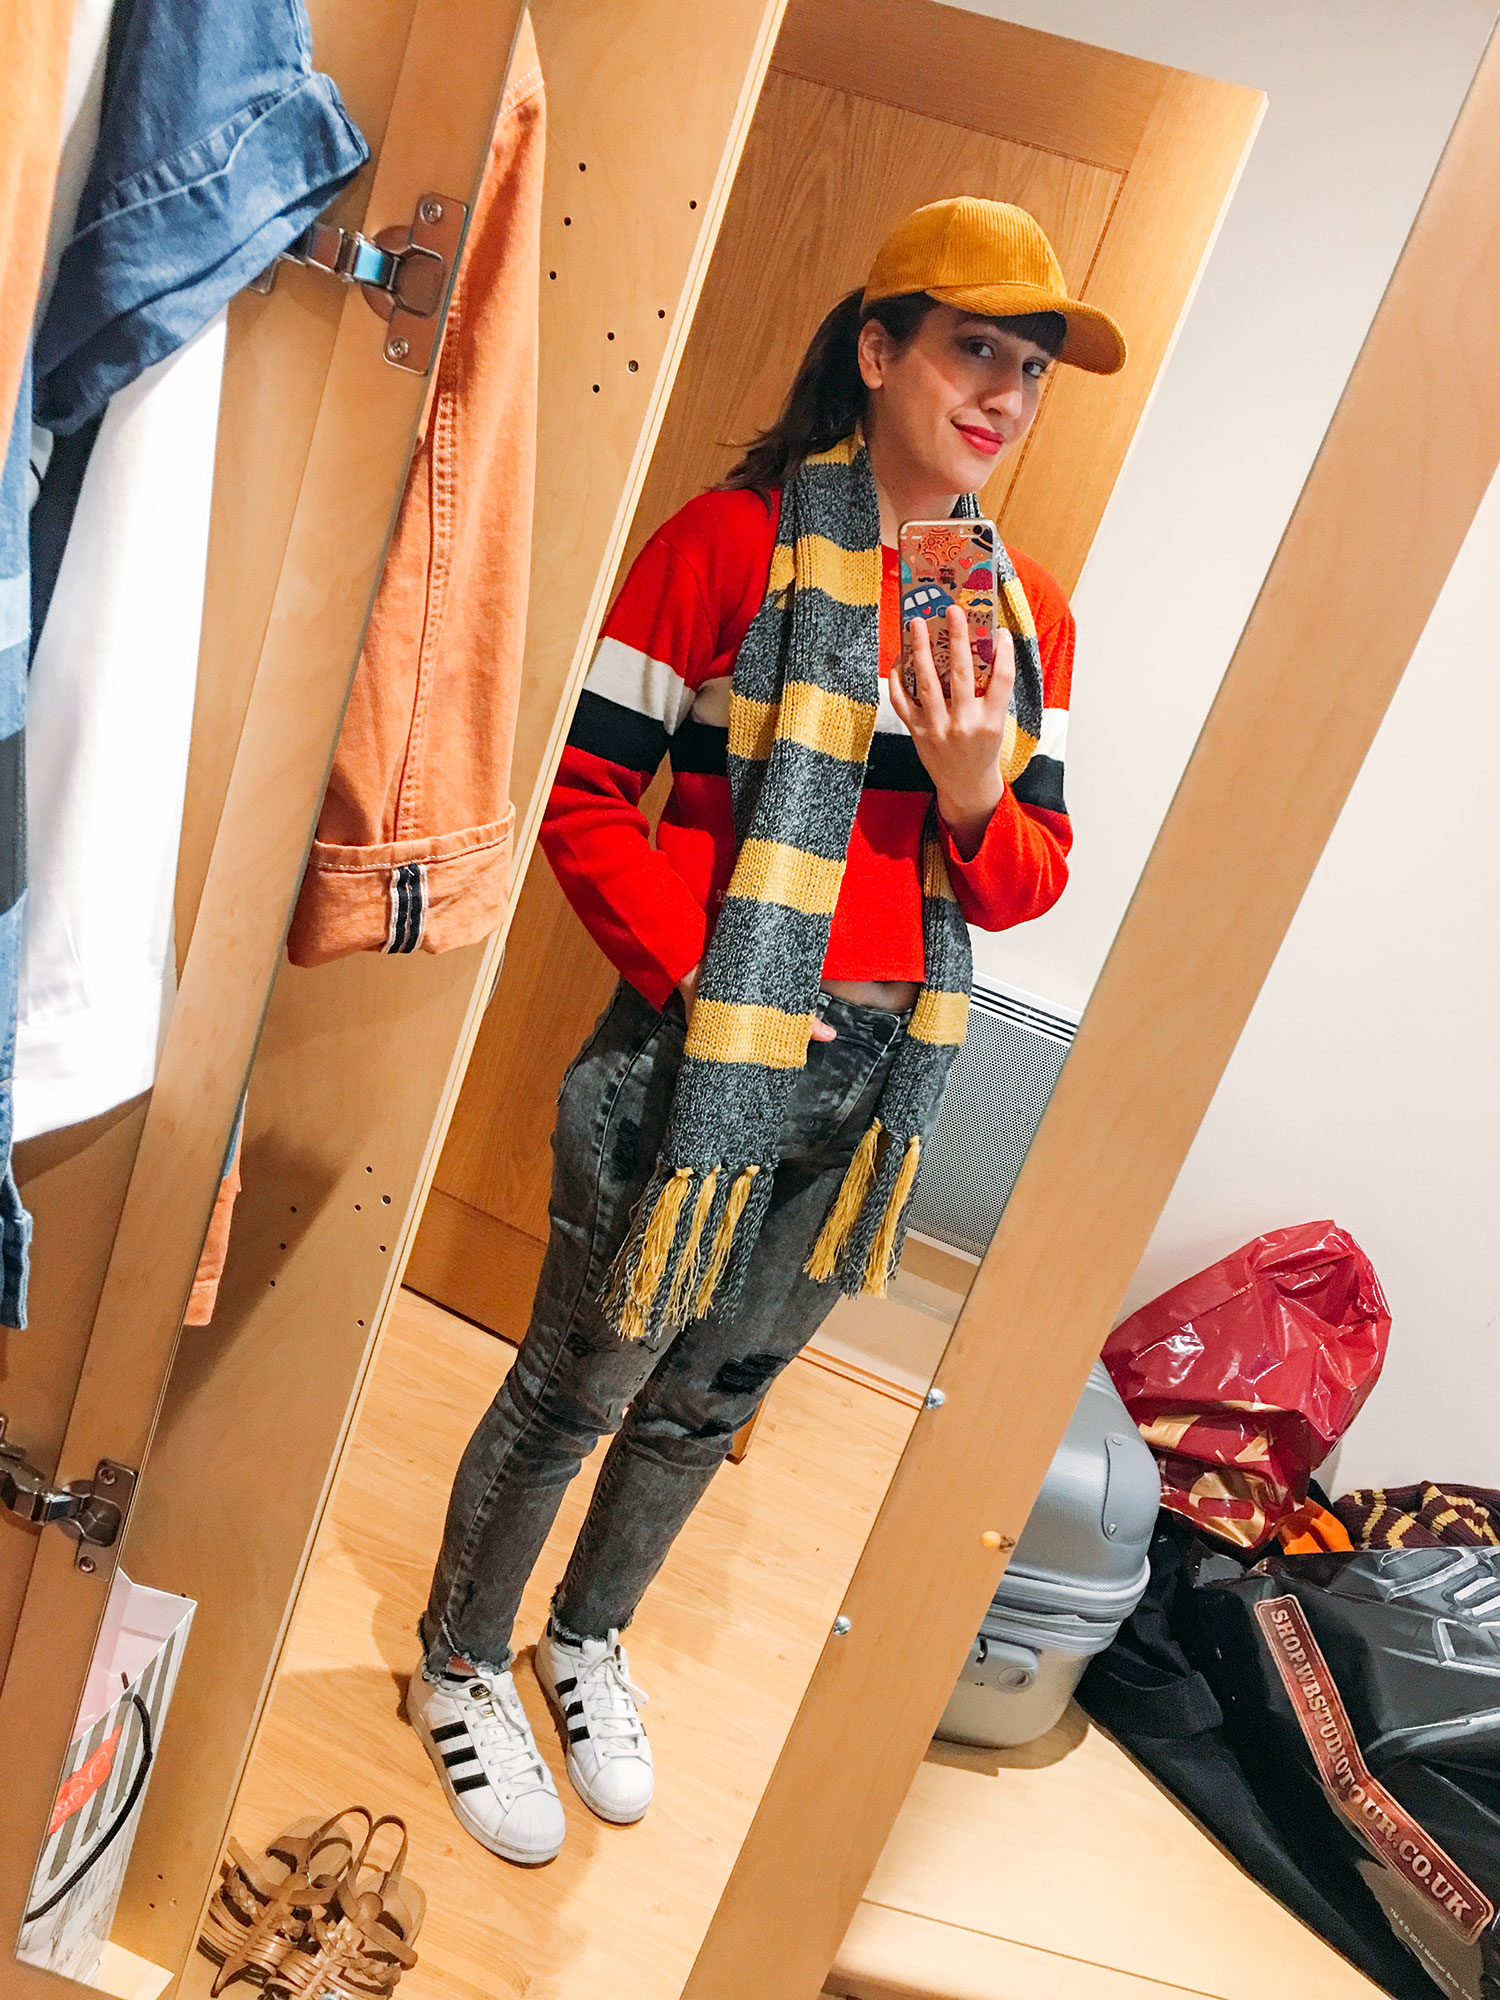 fashion, fashionista, moda, blogger argentina, fashion blogger, fashion blogger argentina, blogger, lifestyle blogger, thoughts, ootd, outfit, style, look, outfit of the day, lookbook, what i wore, style, winter style, autumn style, aw style, travel outfits, travel looks